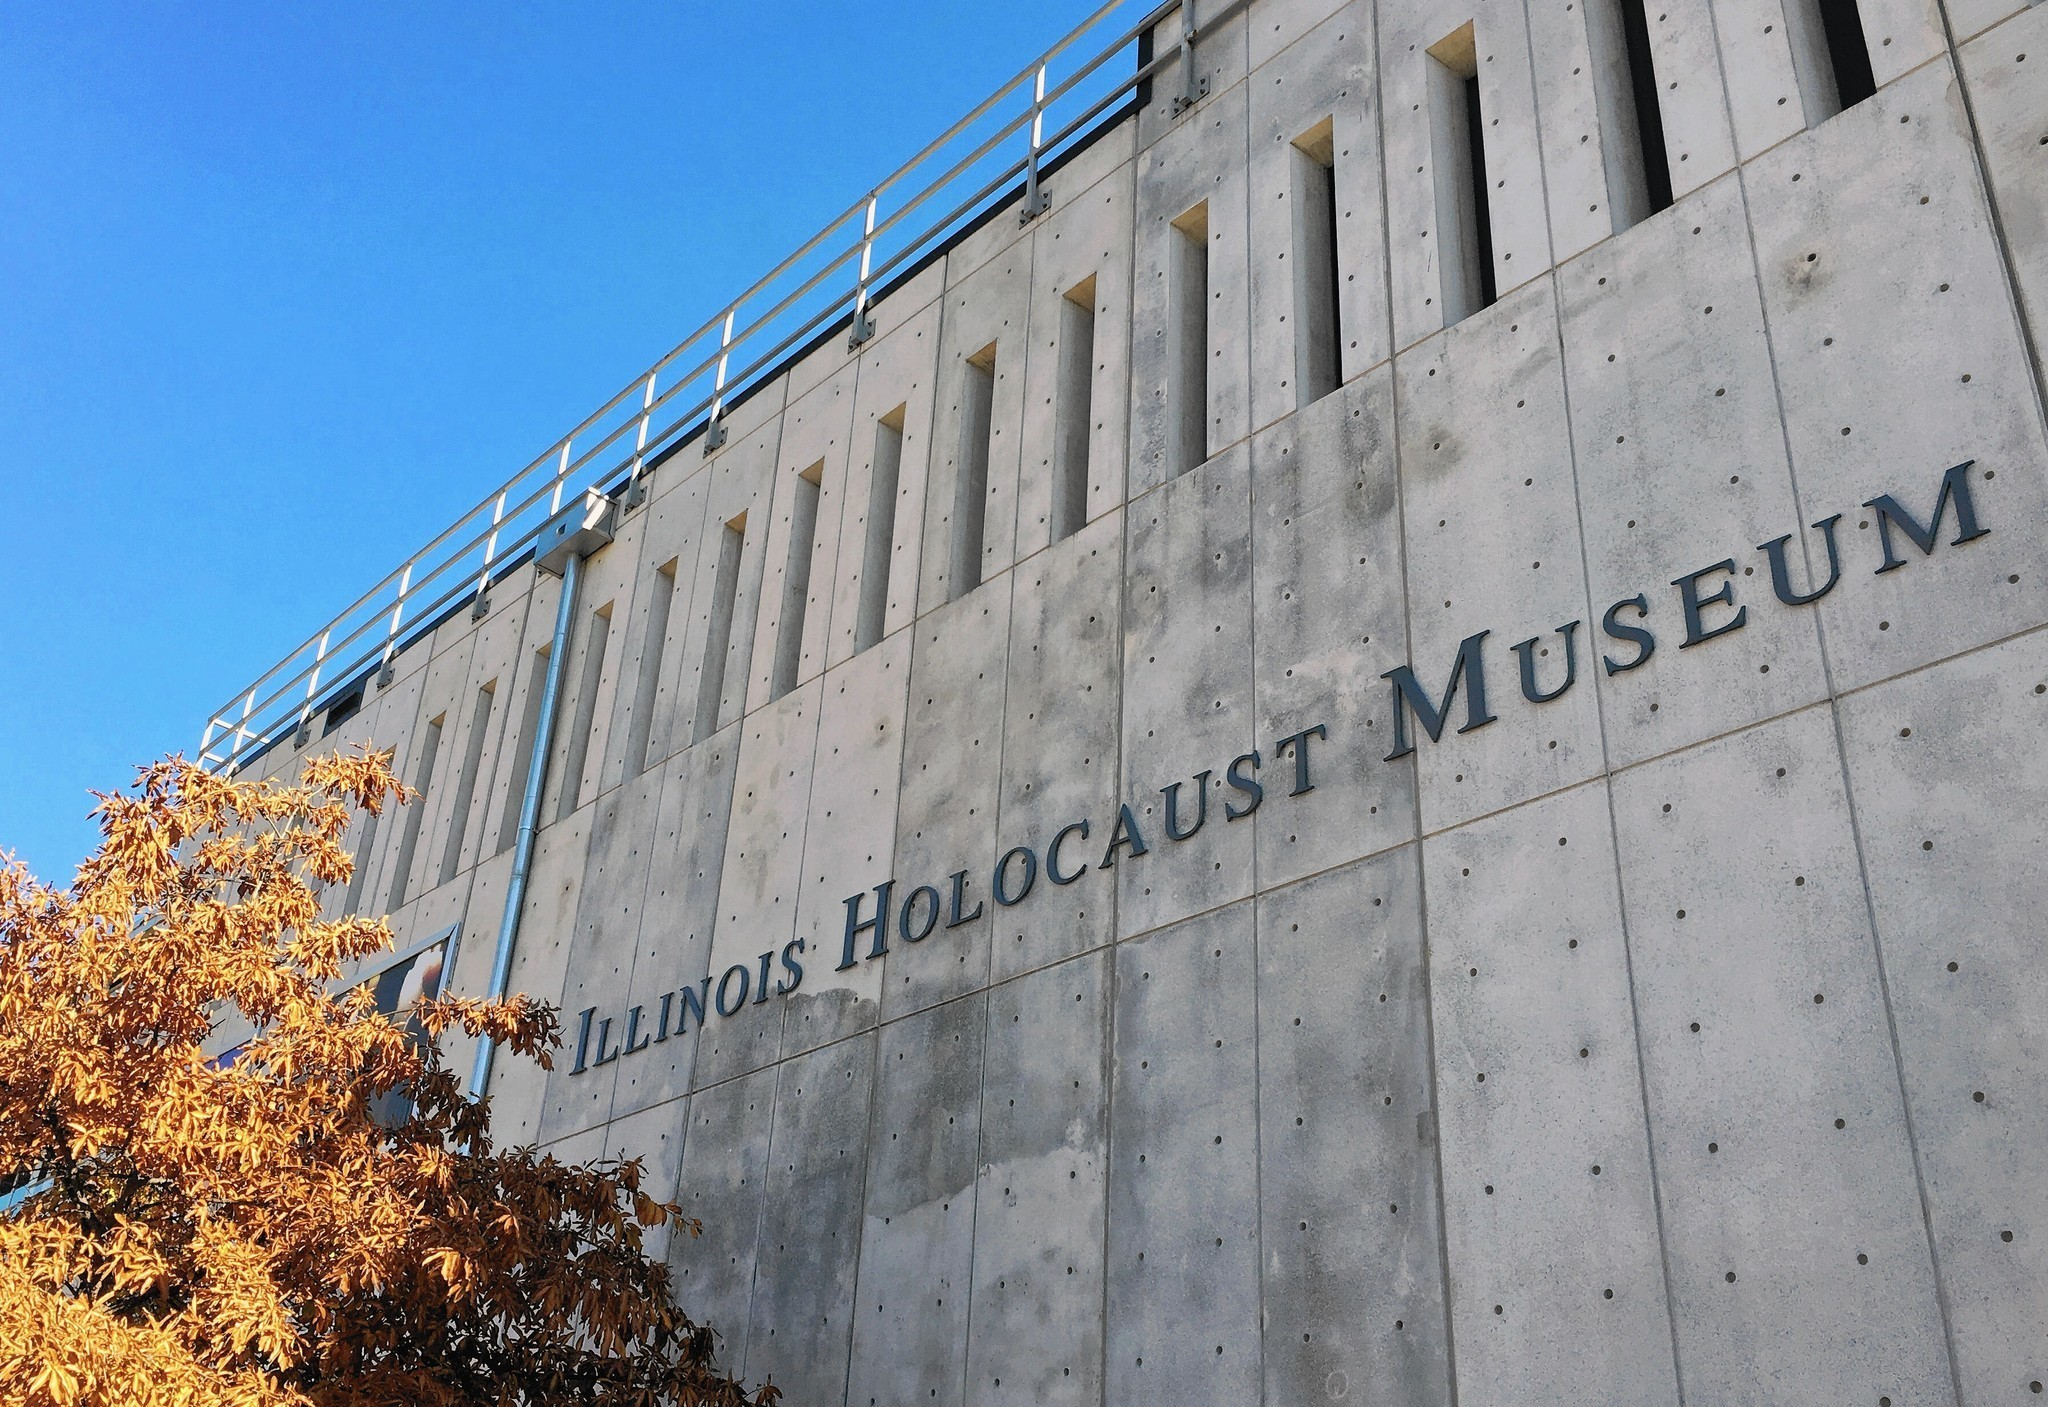 Illinois Holocaust Museum Wins National Award Skokie Review